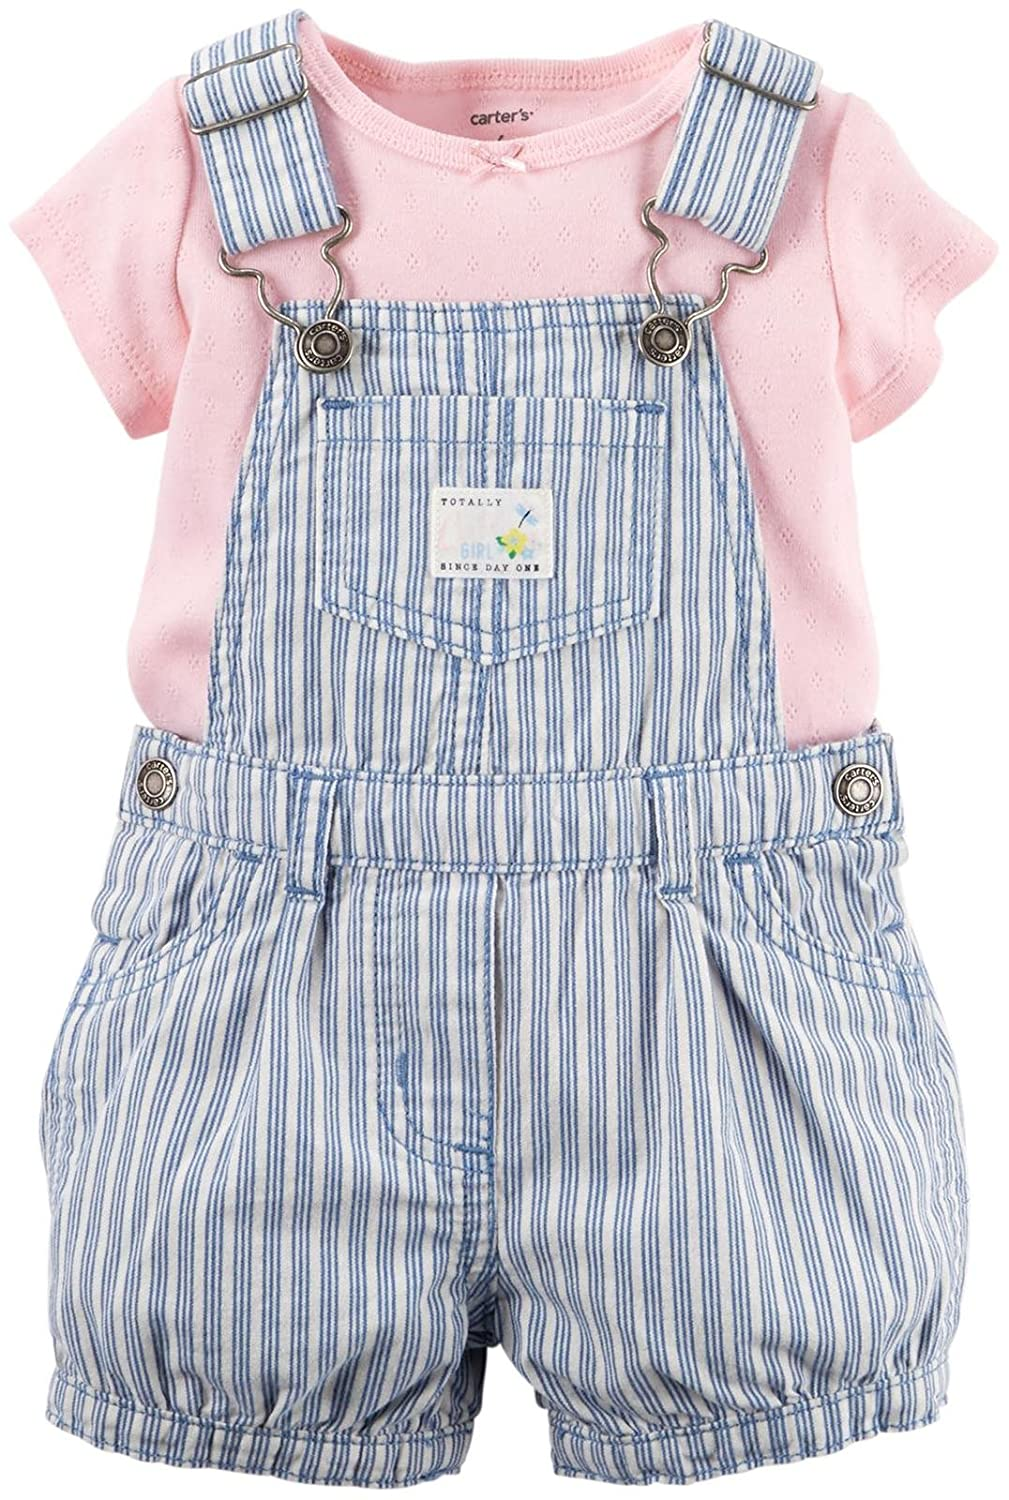 Carter's Baby Girl Collection Denim Shortall, Carters CAR127G106